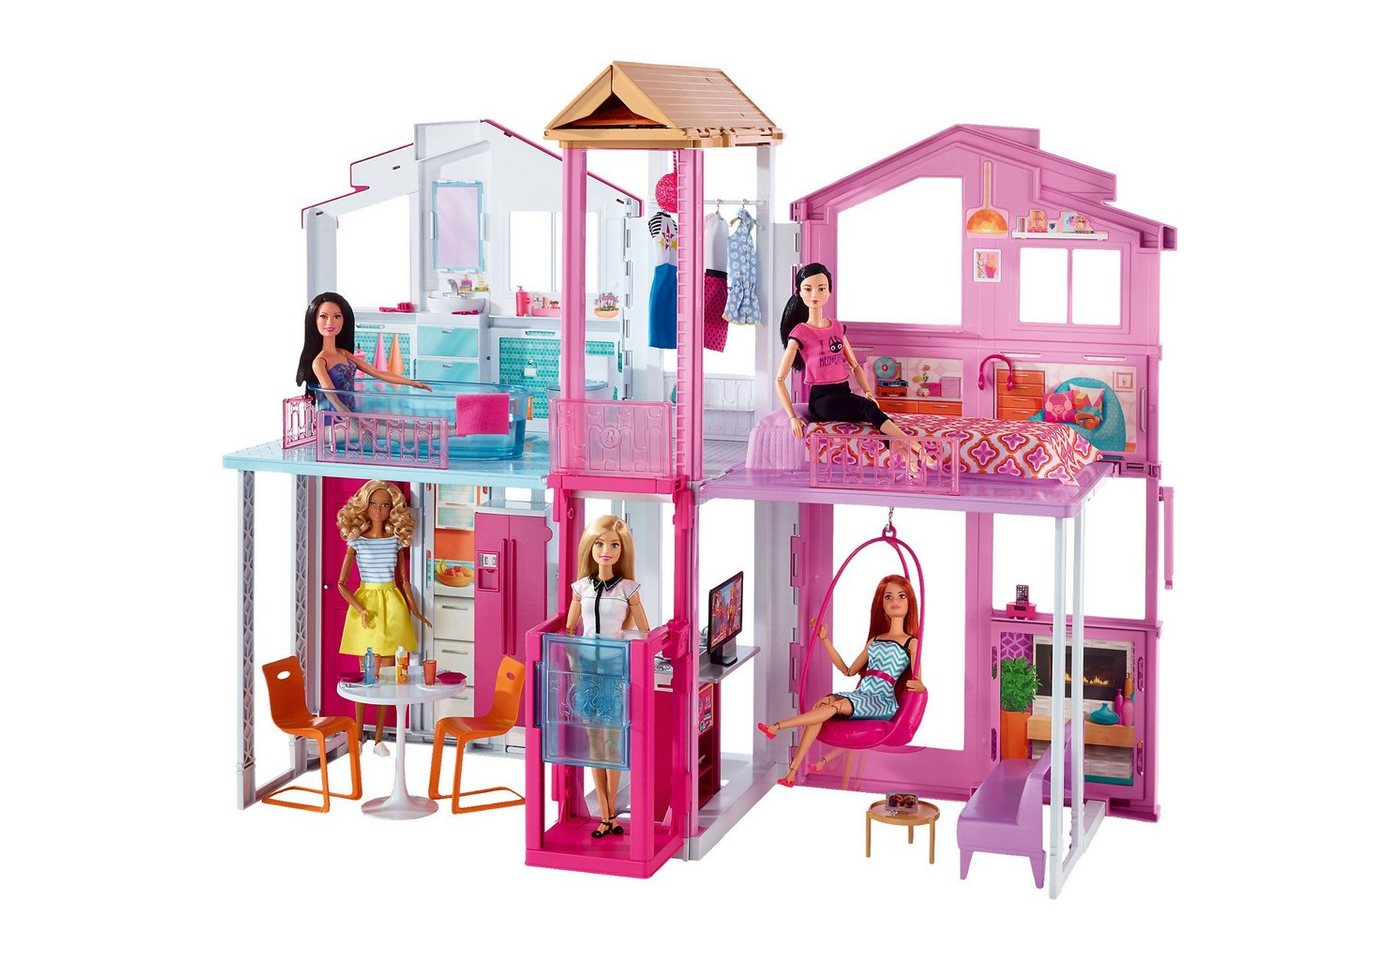 mattel barbie fab life 3 etagen stadthaus preisvergleich 3 etagen stadthaus g nstig kaufen. Black Bedroom Furniture Sets. Home Design Ideas